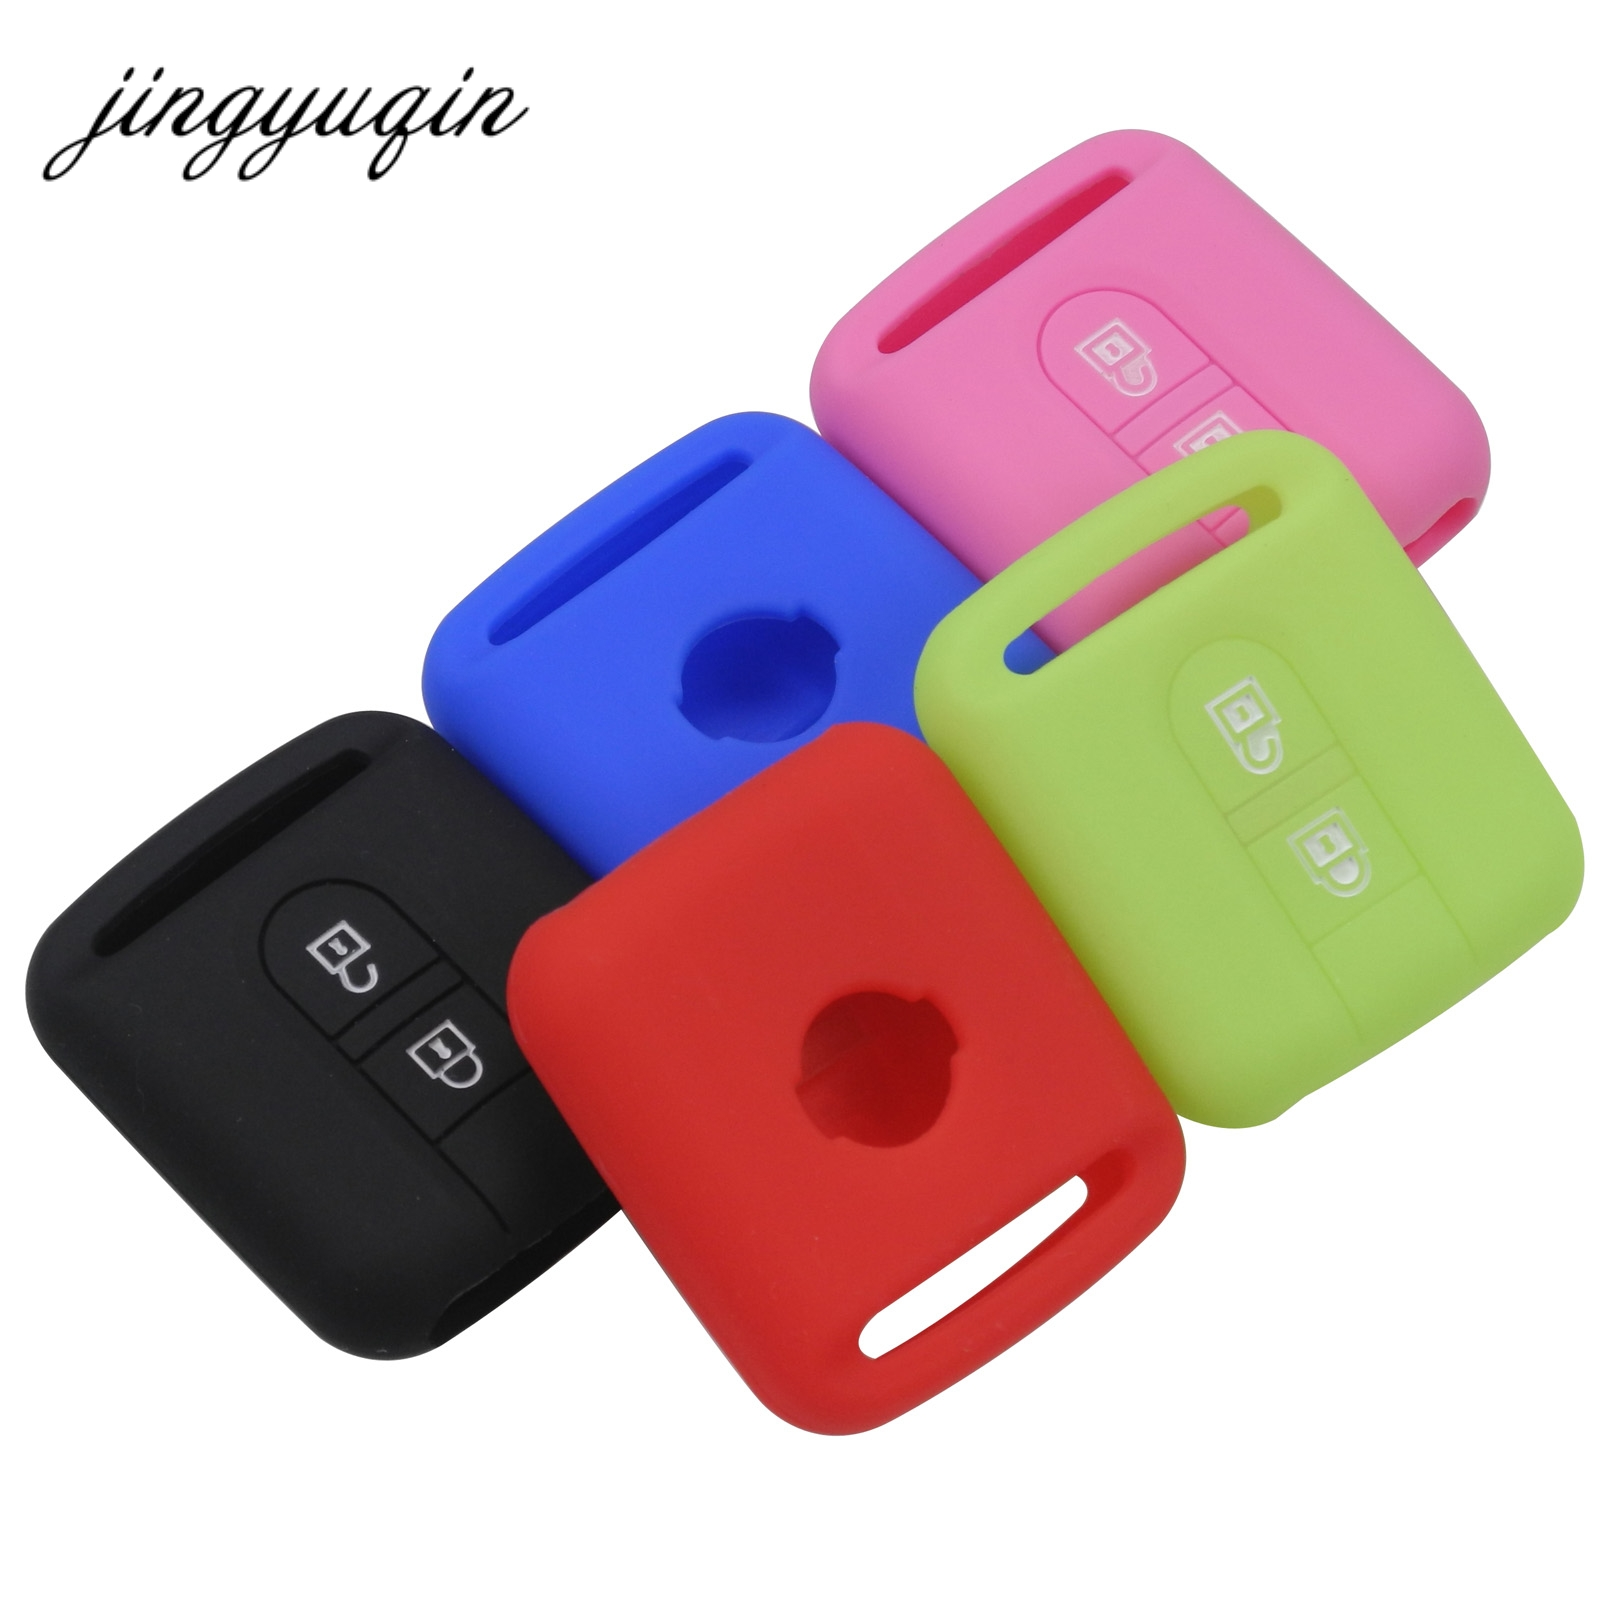 Jingyuqin Remote Car Key Silicone Case For Qashqai Nissan Micra Navara Almera Note Fob Rubber Cover 2 Button